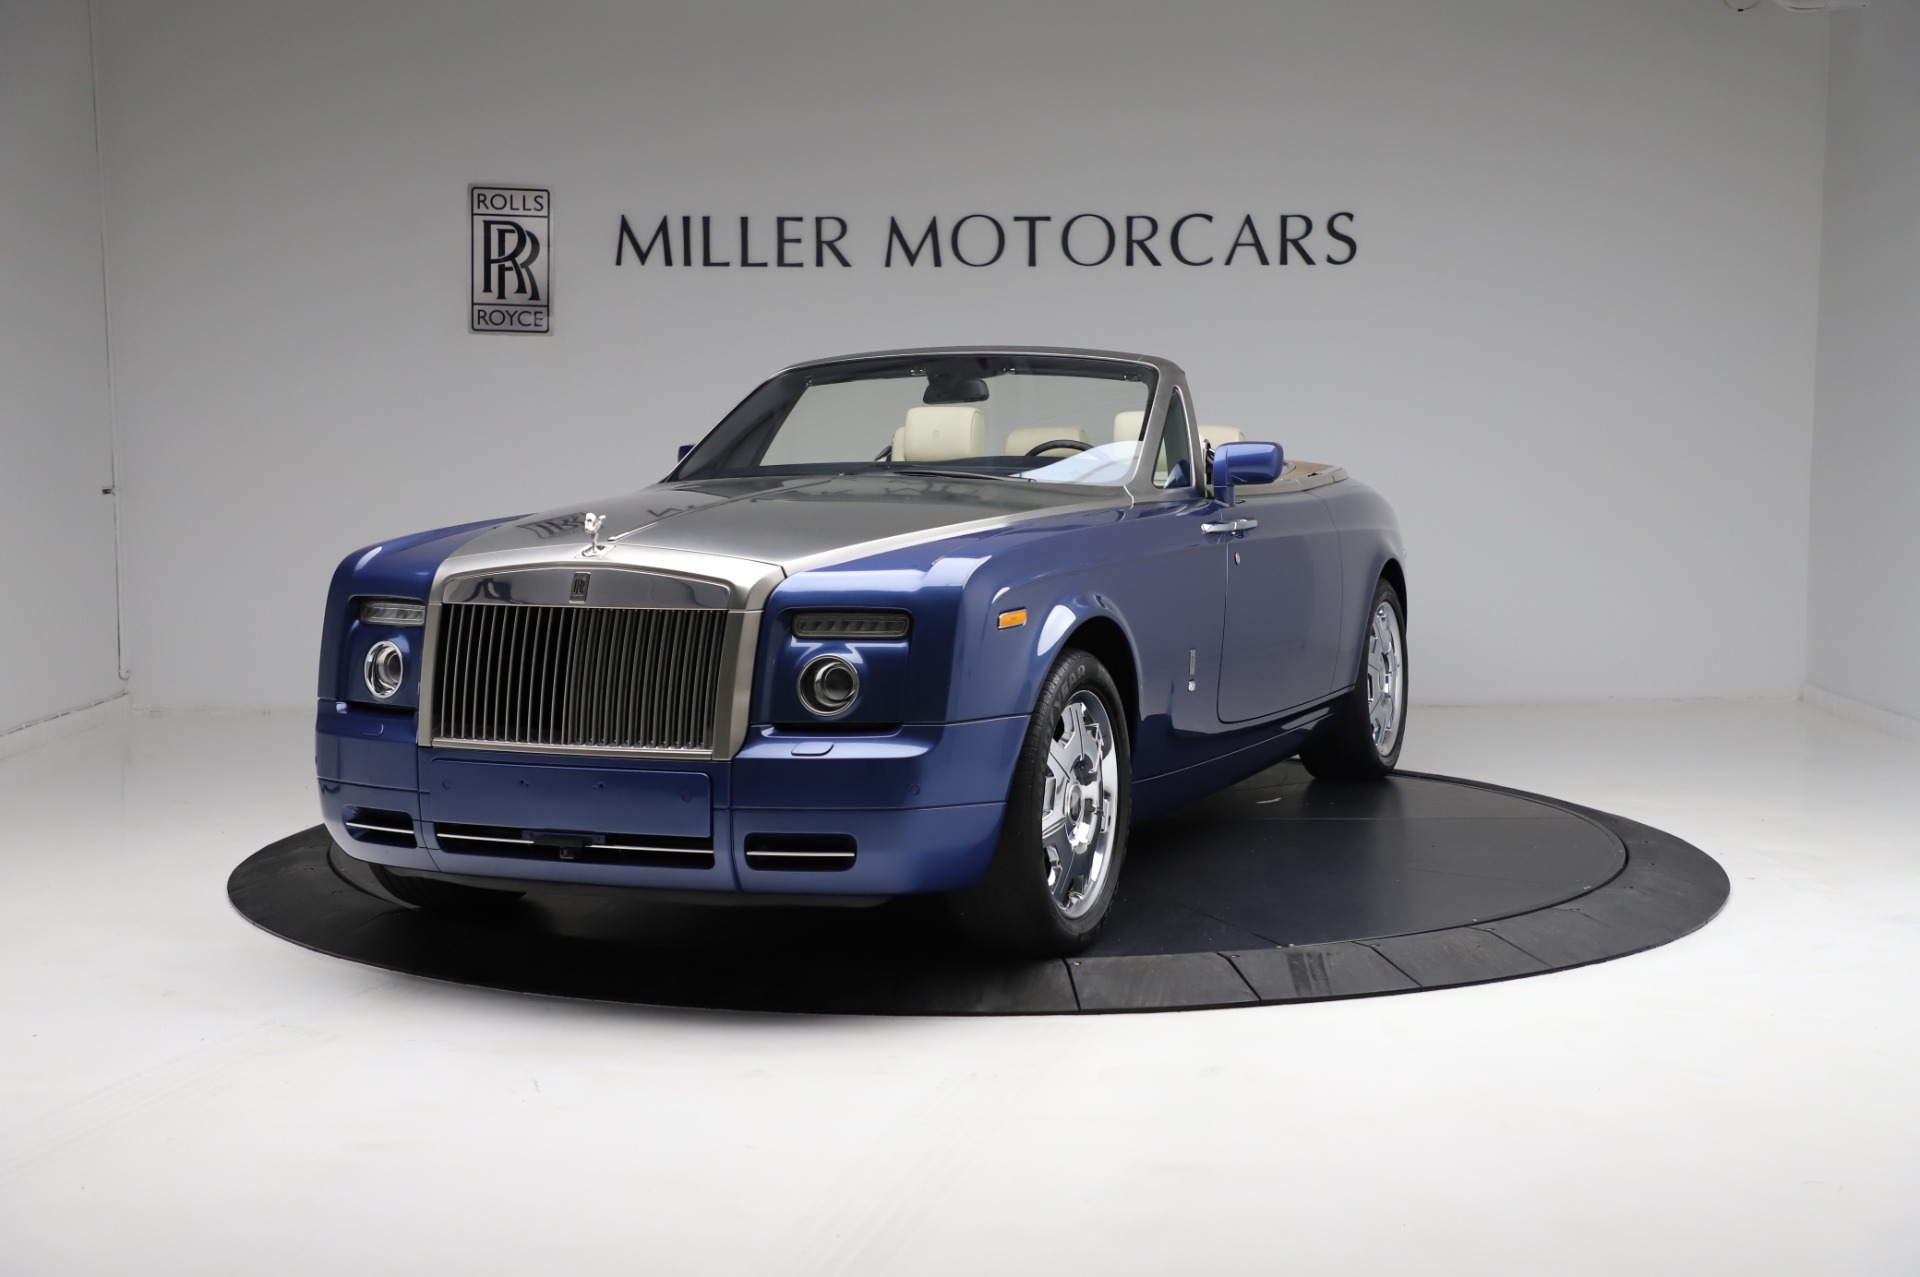 Used 2009 Rolls-Royce Phantom Drophead Coupe for sale $225,900 at Aston Martin of Greenwich in Greenwich CT 06830 1